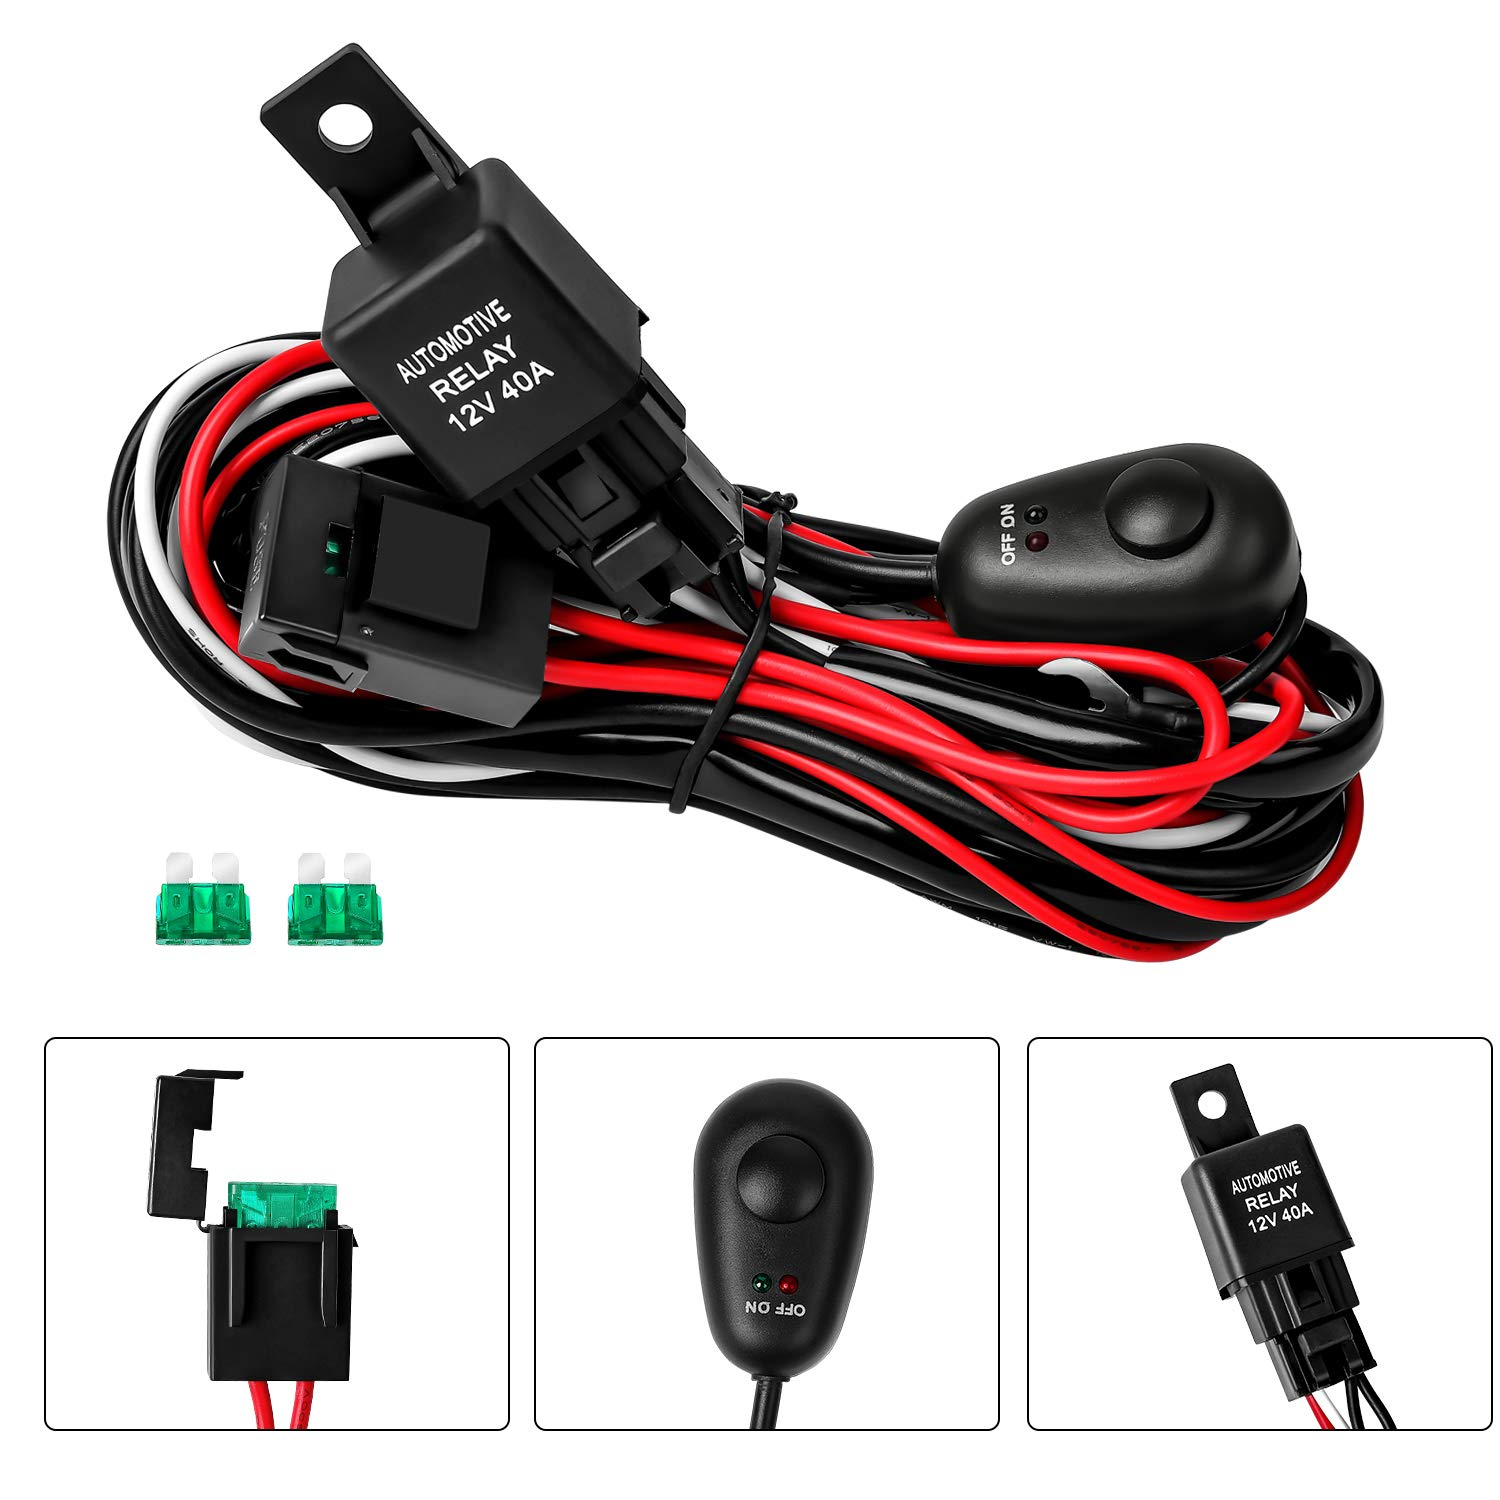 led light bar wiring harness, off road on off 12v 40a with 3 fuse power switch relay for led work lights driving fog light Light Wiring Harness